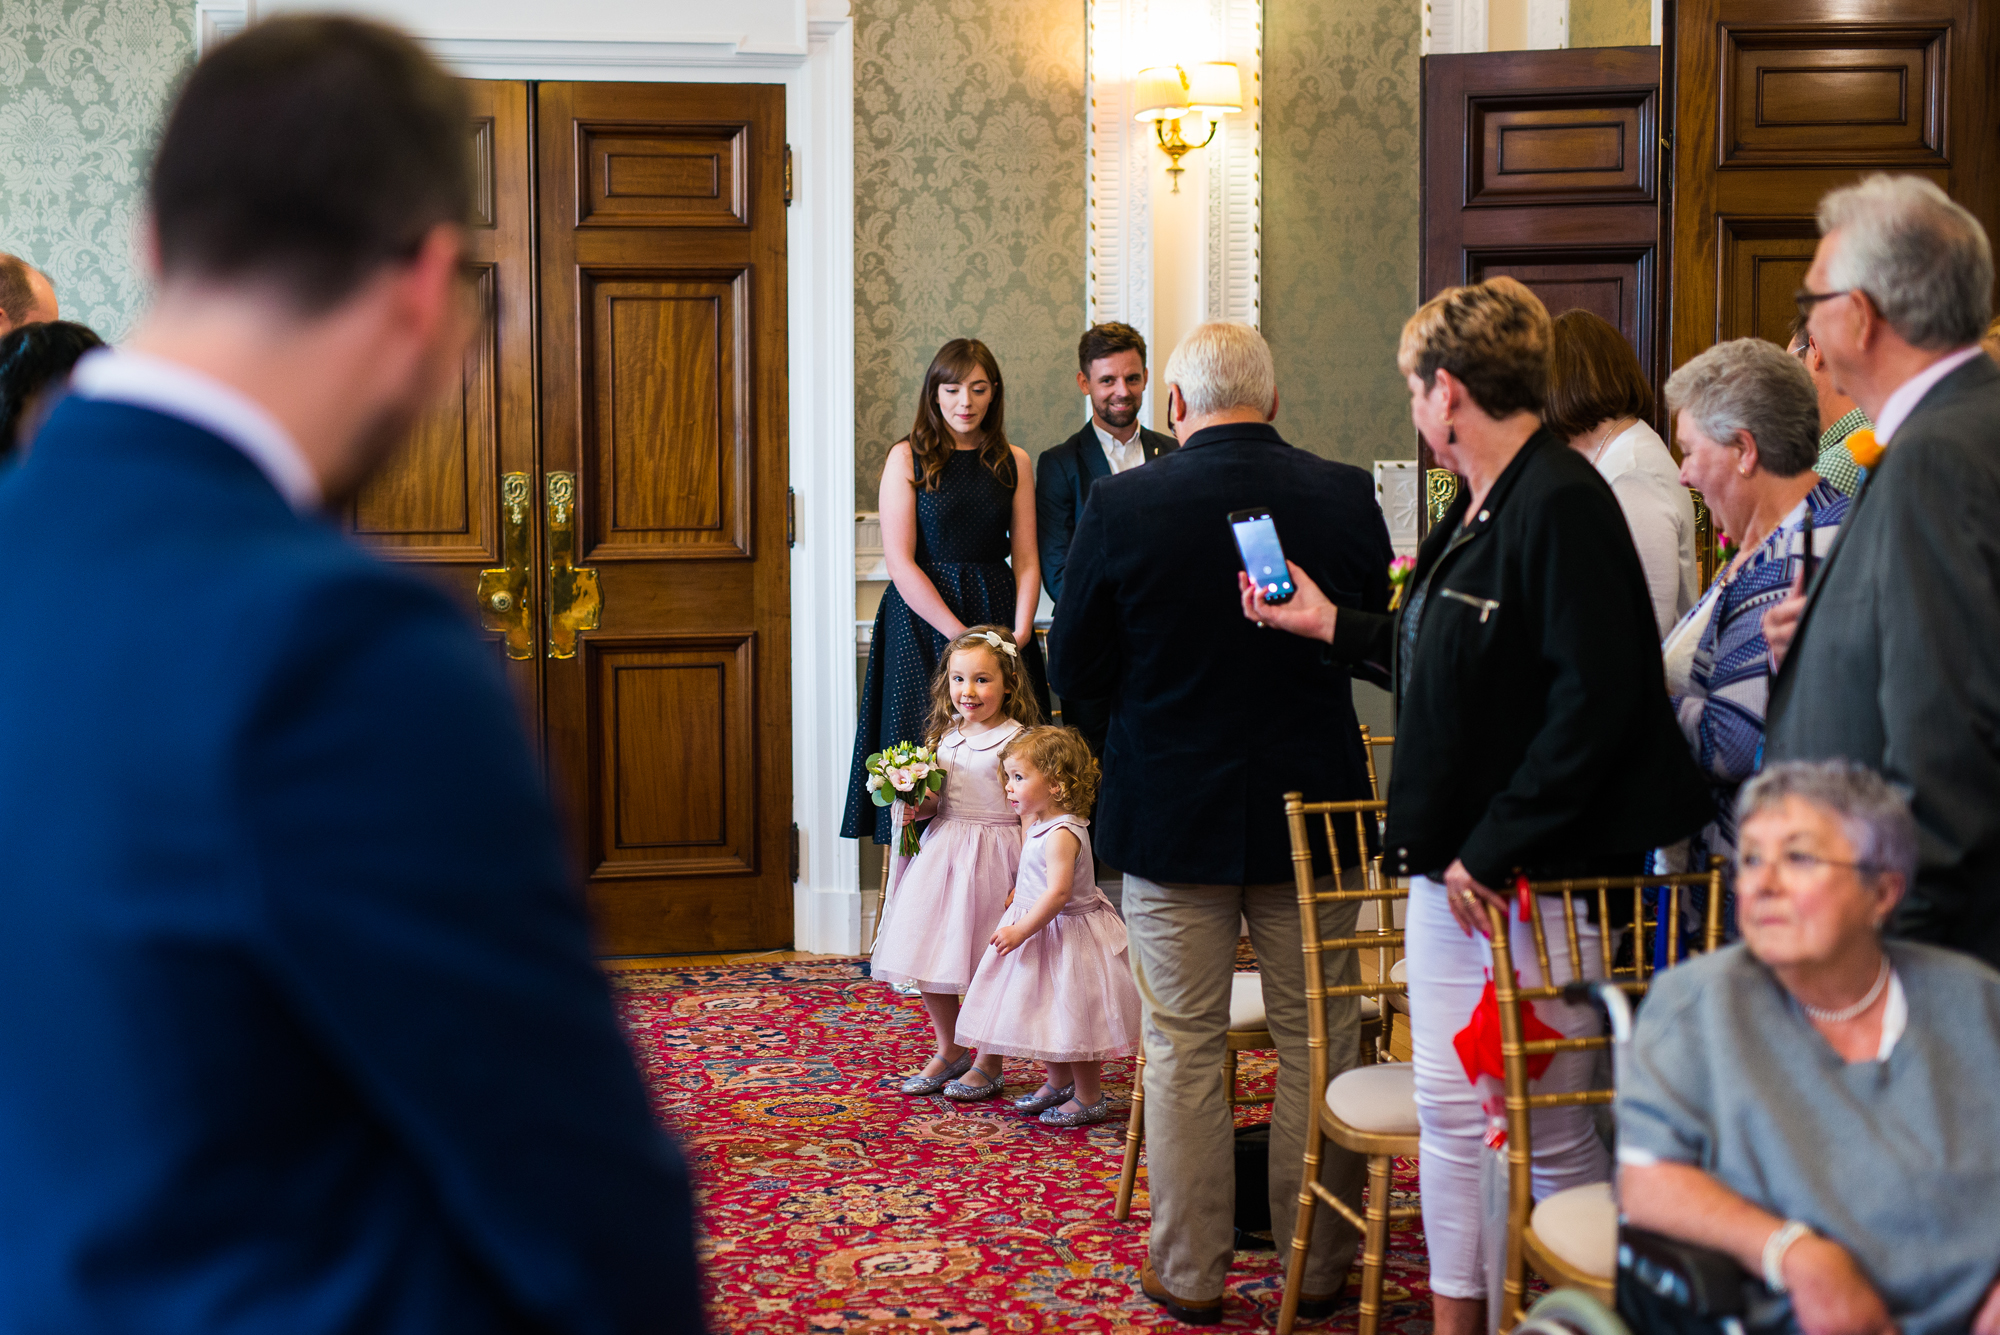 Crewe municipal building wedding8.jpg